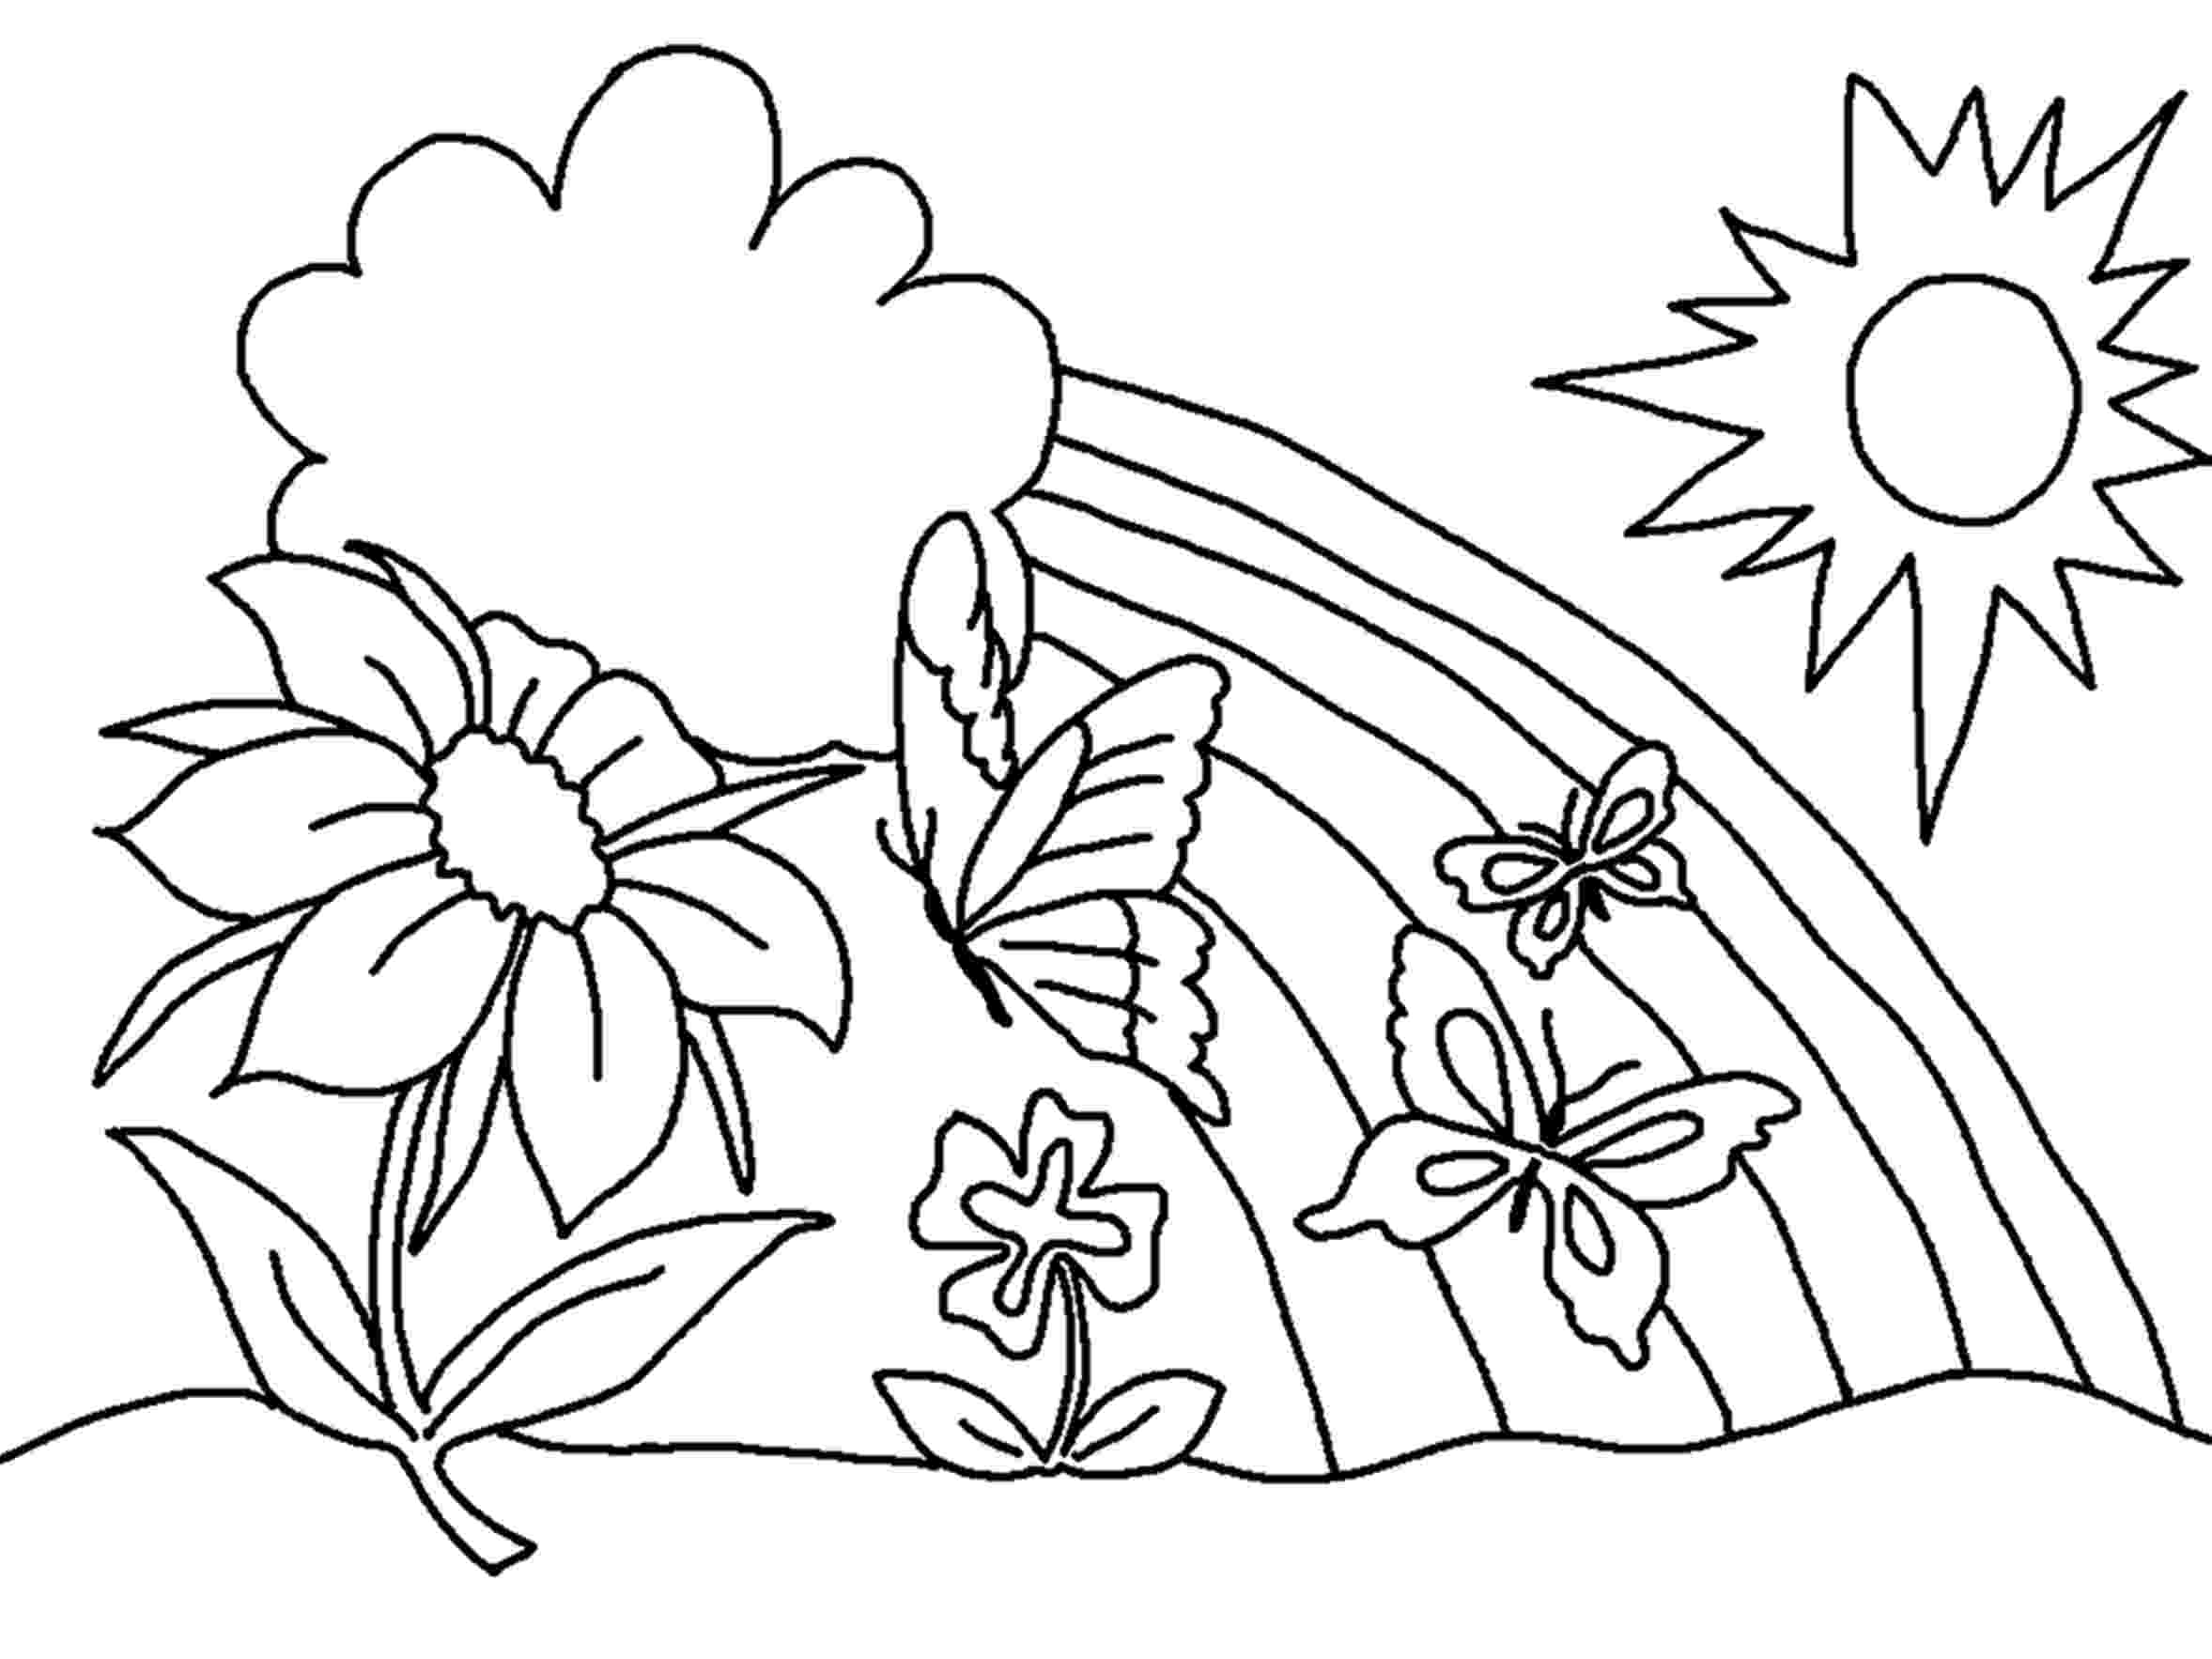 flowers coloring pages for kids free printable flower coloring pages for kids best kids for coloring pages flowers